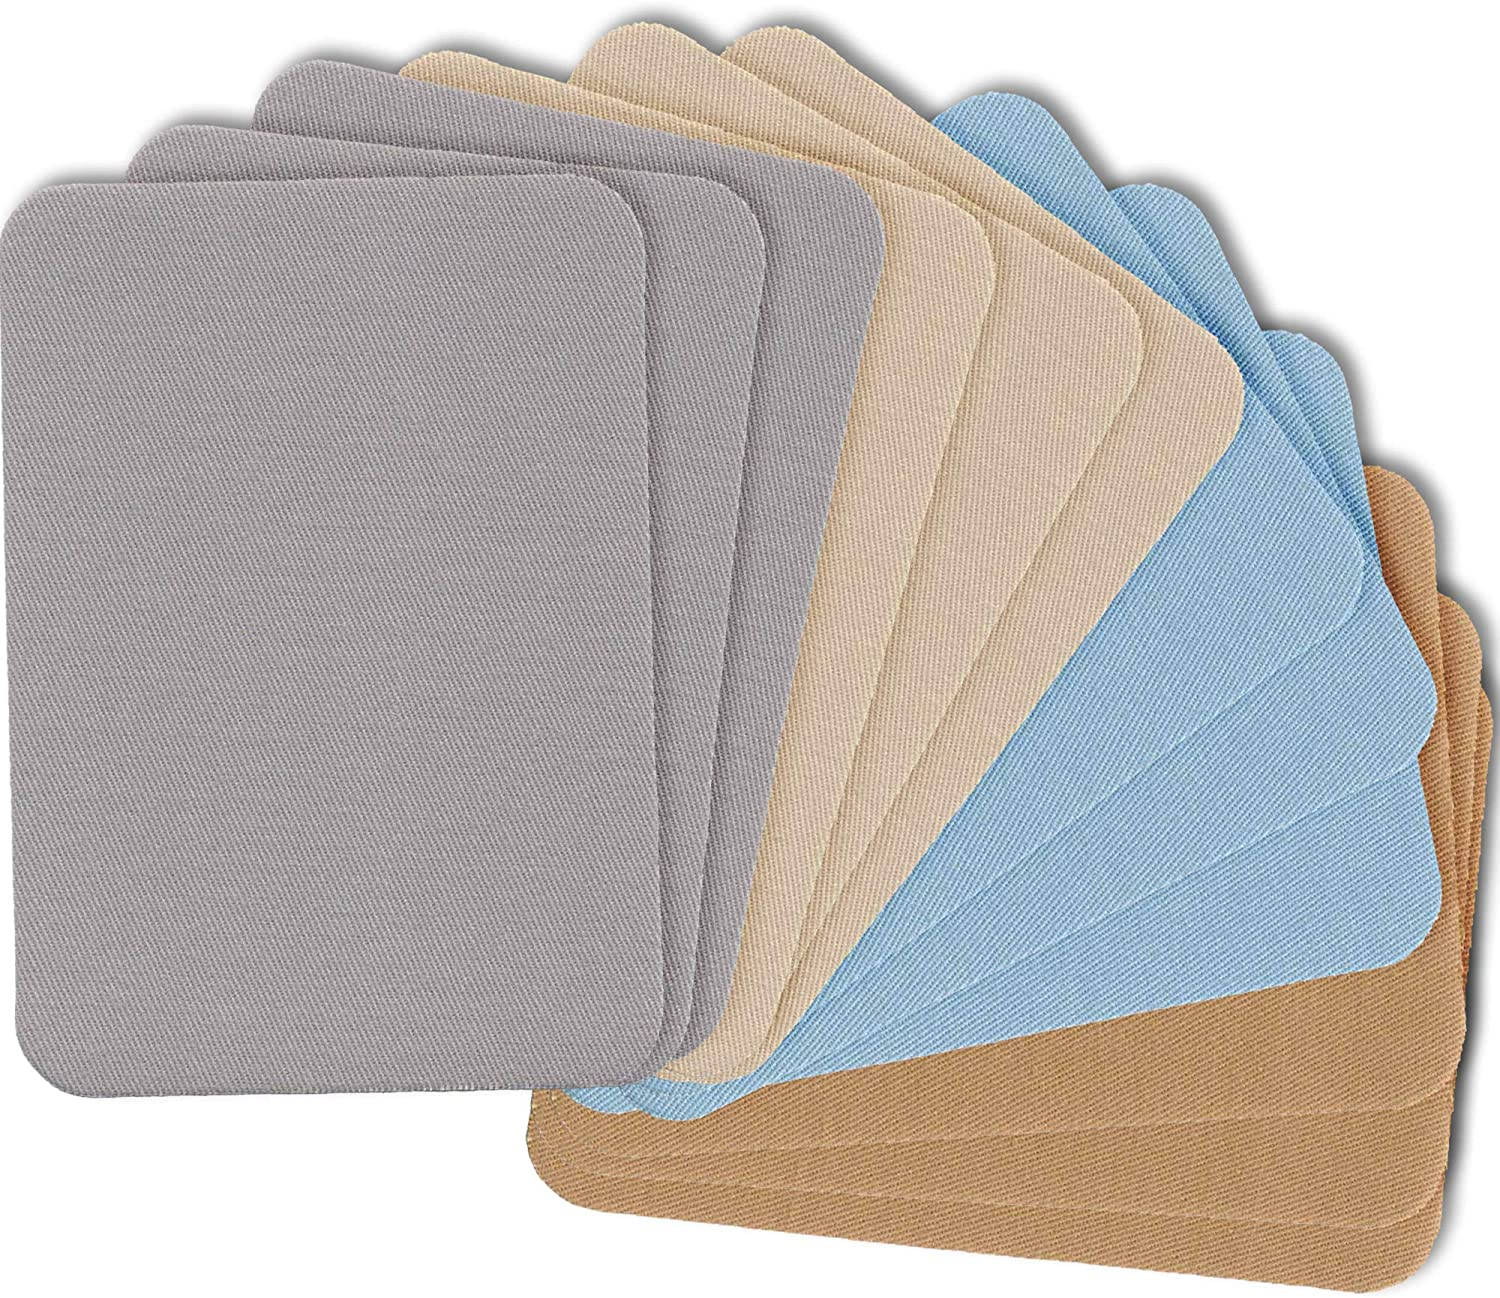 """ZEFFFKA Premium Quality Fabric Iron-on Patches Inside & Outside Strongest Glue 100% Cotton Blue Gray Beige Brown Repair Decorating Kit 12 Pieces Size 3"""" by 4-1/4"""" (7.5 cm x 10.5 cm)"""